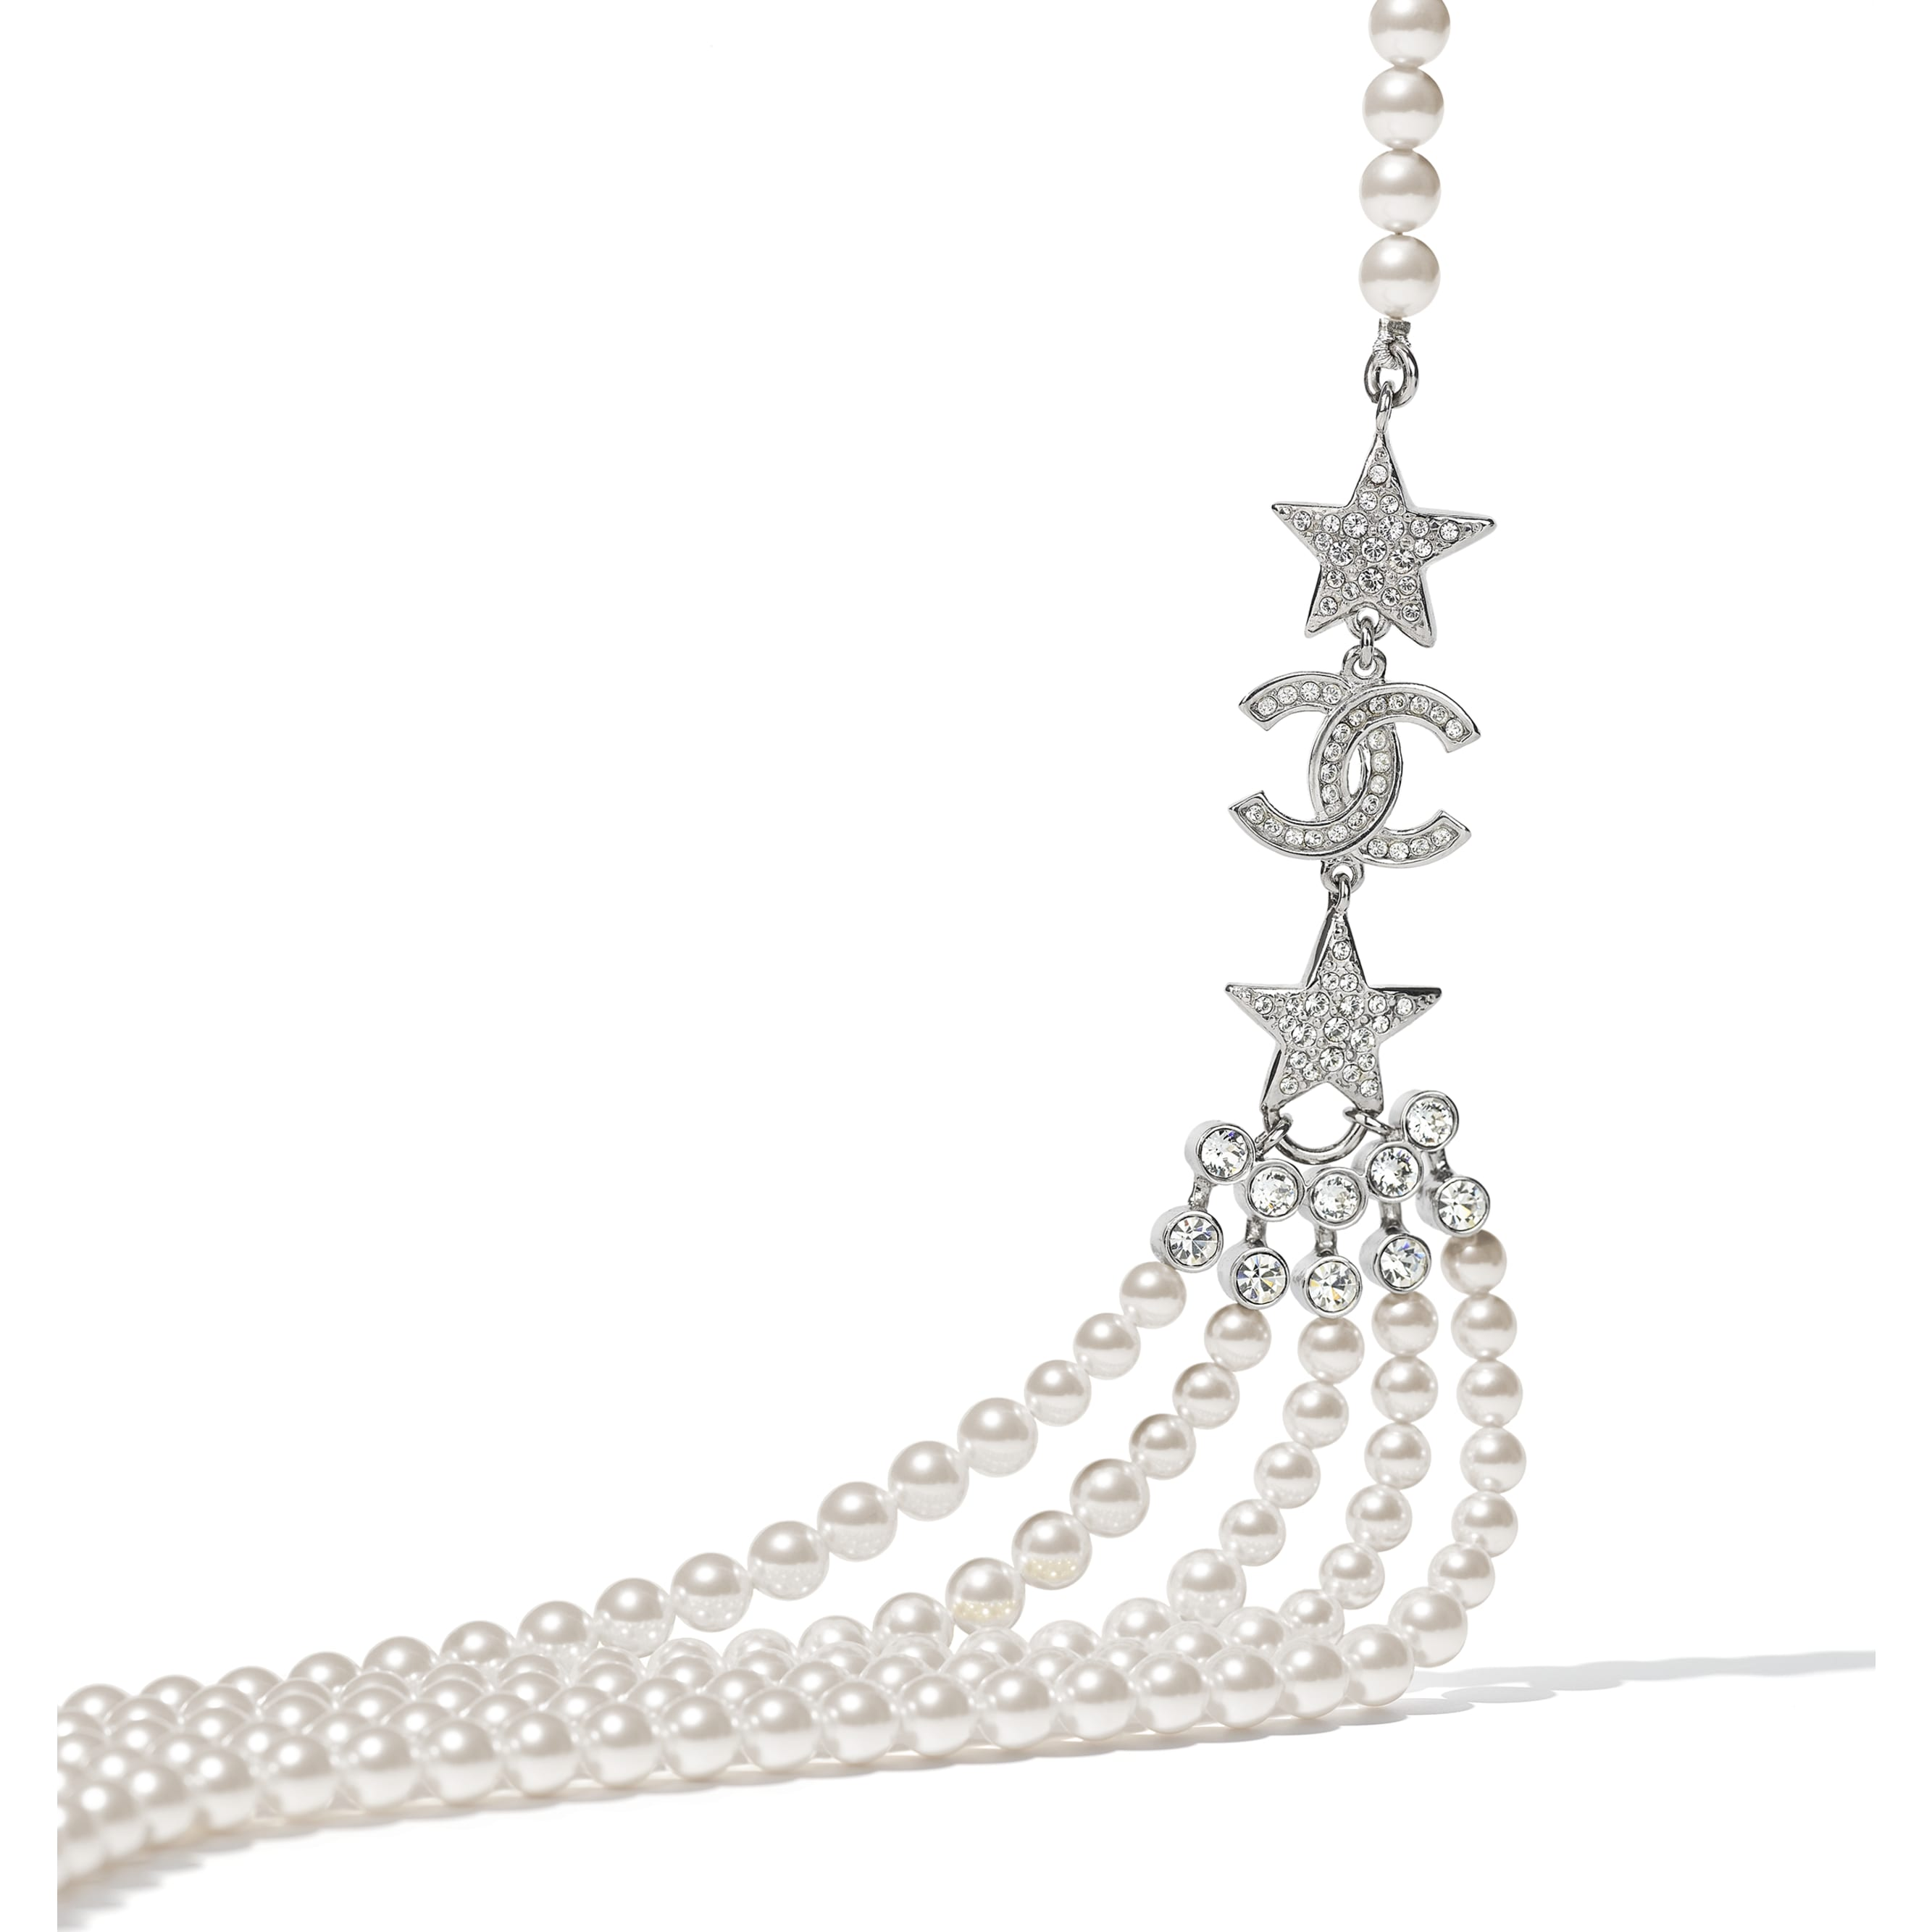 Belt - Silver, Pearly White & Crystal - Metal, Glass Pearls & Diamantés - CHANEL - Alternative view - see standard sized version